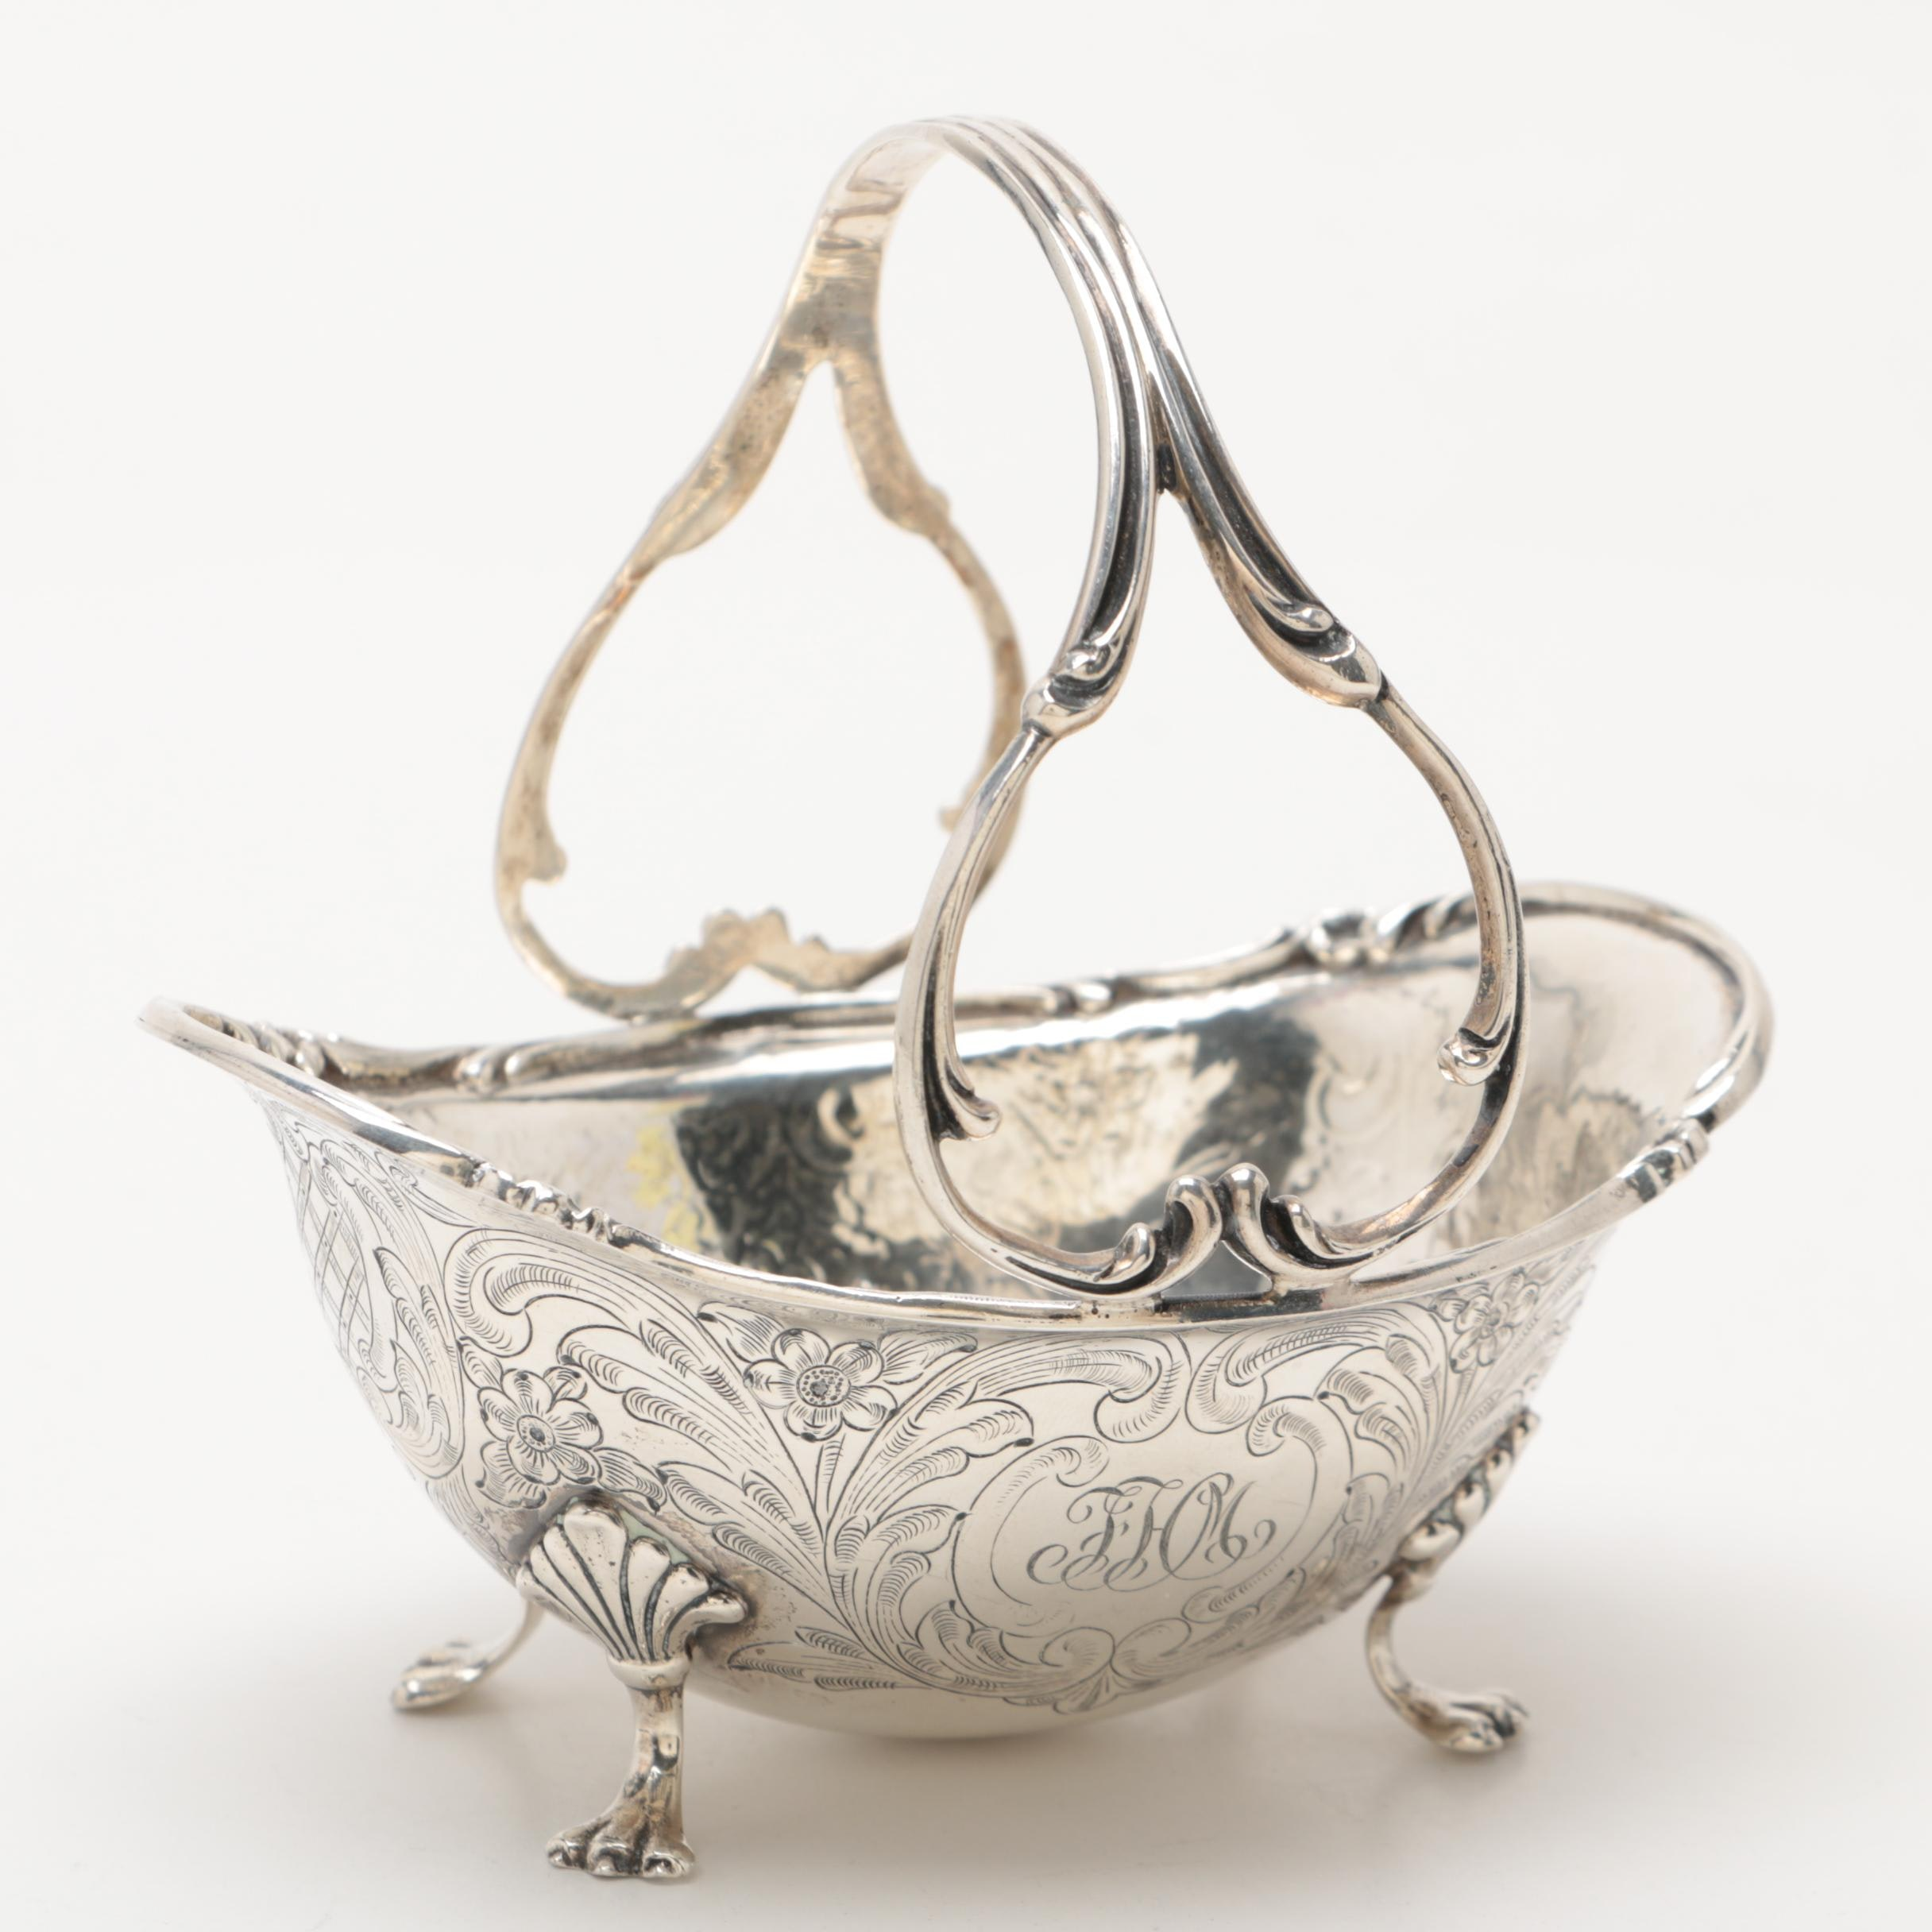 Antique Hand-Chaised Sterling Silver Footed and Handled Sugar Basket